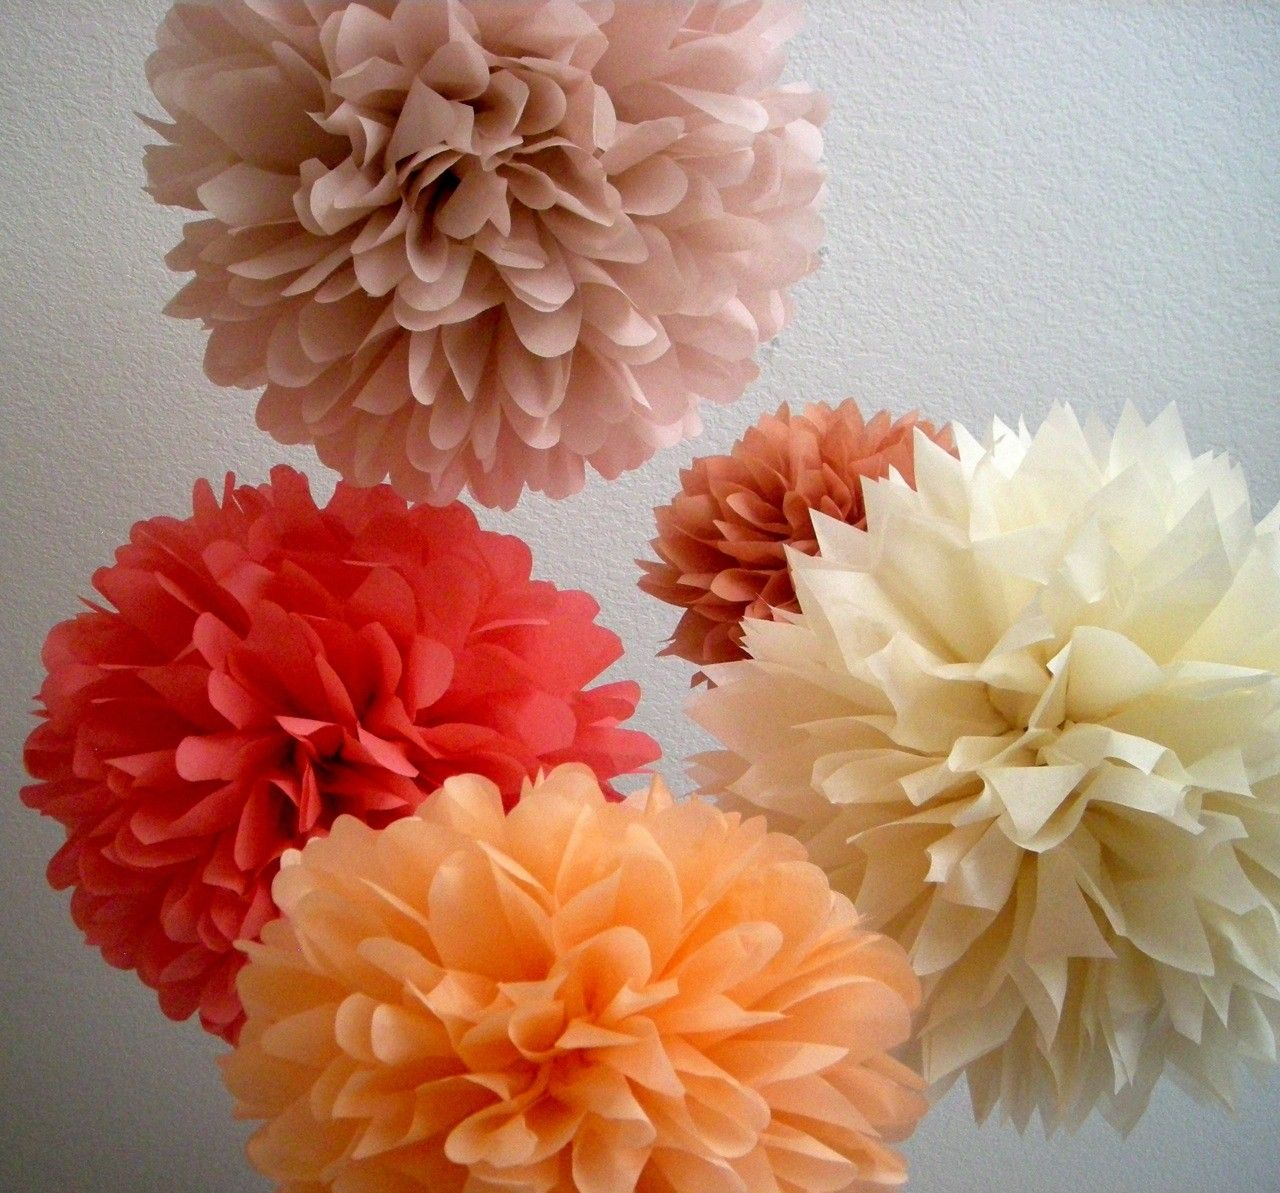 Tea Party 5 Tissue Paper Pompoms Paris French Theme Baby Bridal Wedding Decorations First 30th Birthday Party Peach Coral Rose Gold Tissue Paper Pom Poms Paper Pom Poms Paper Flowers